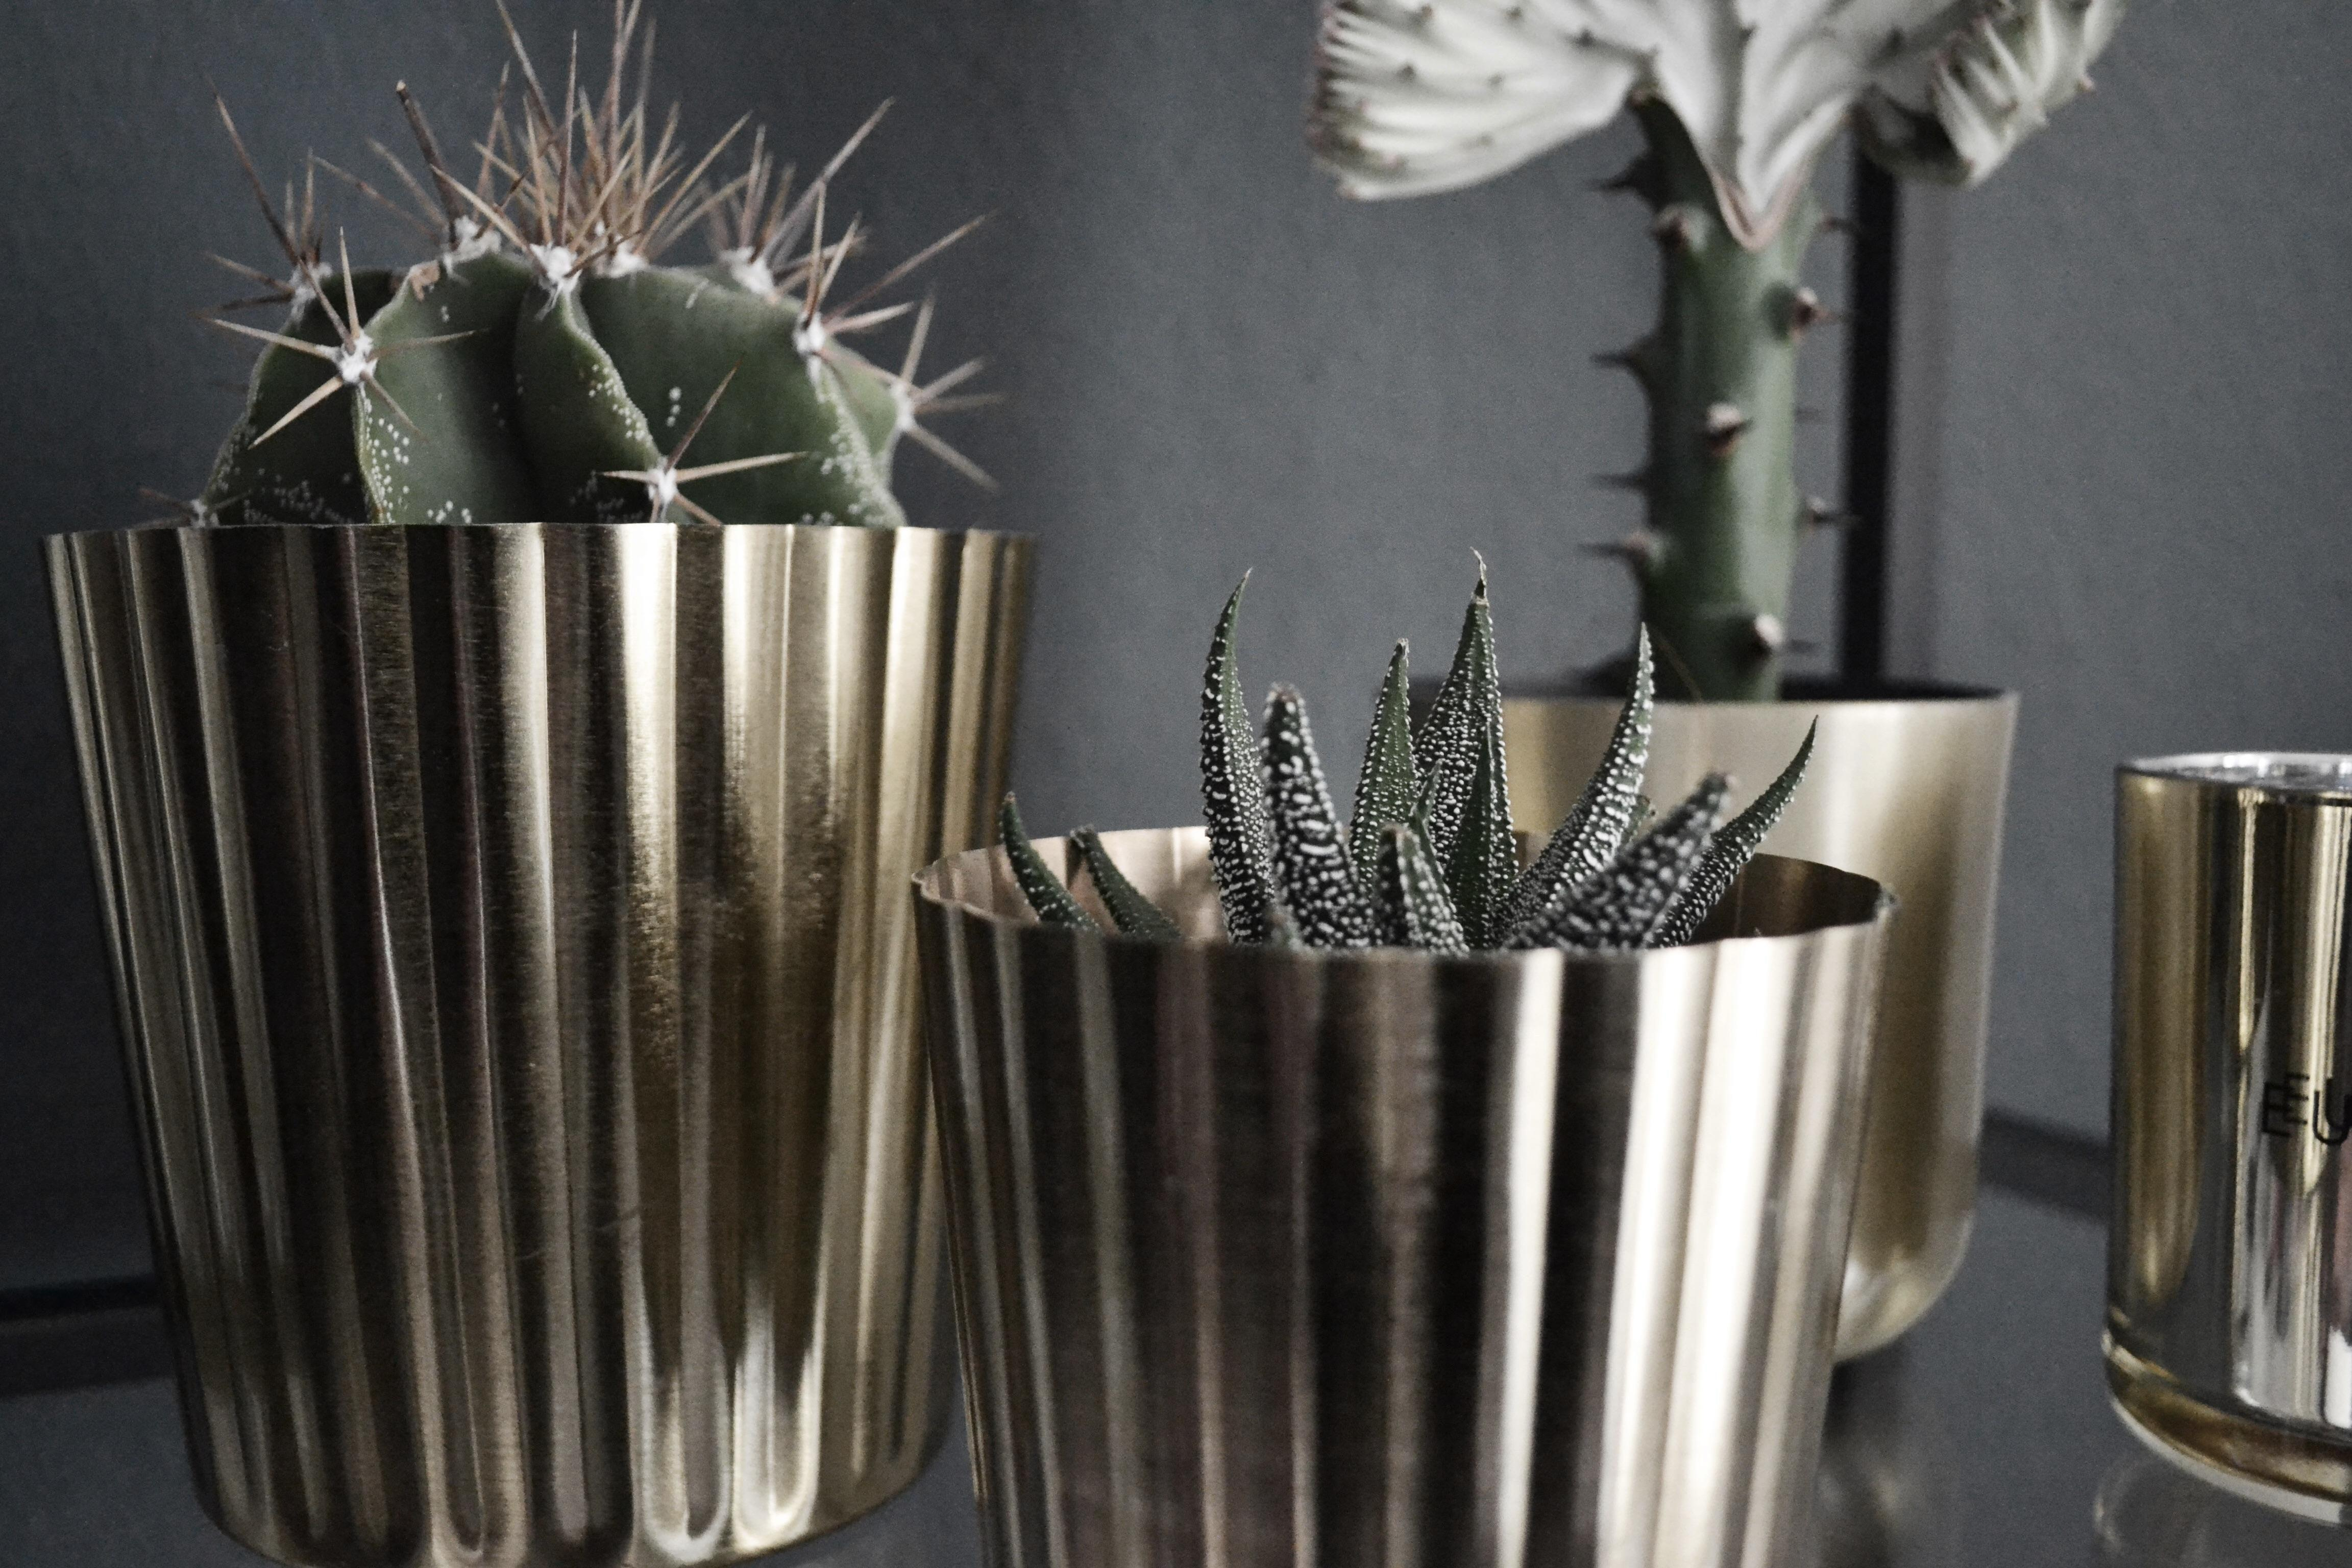 #cactusclub